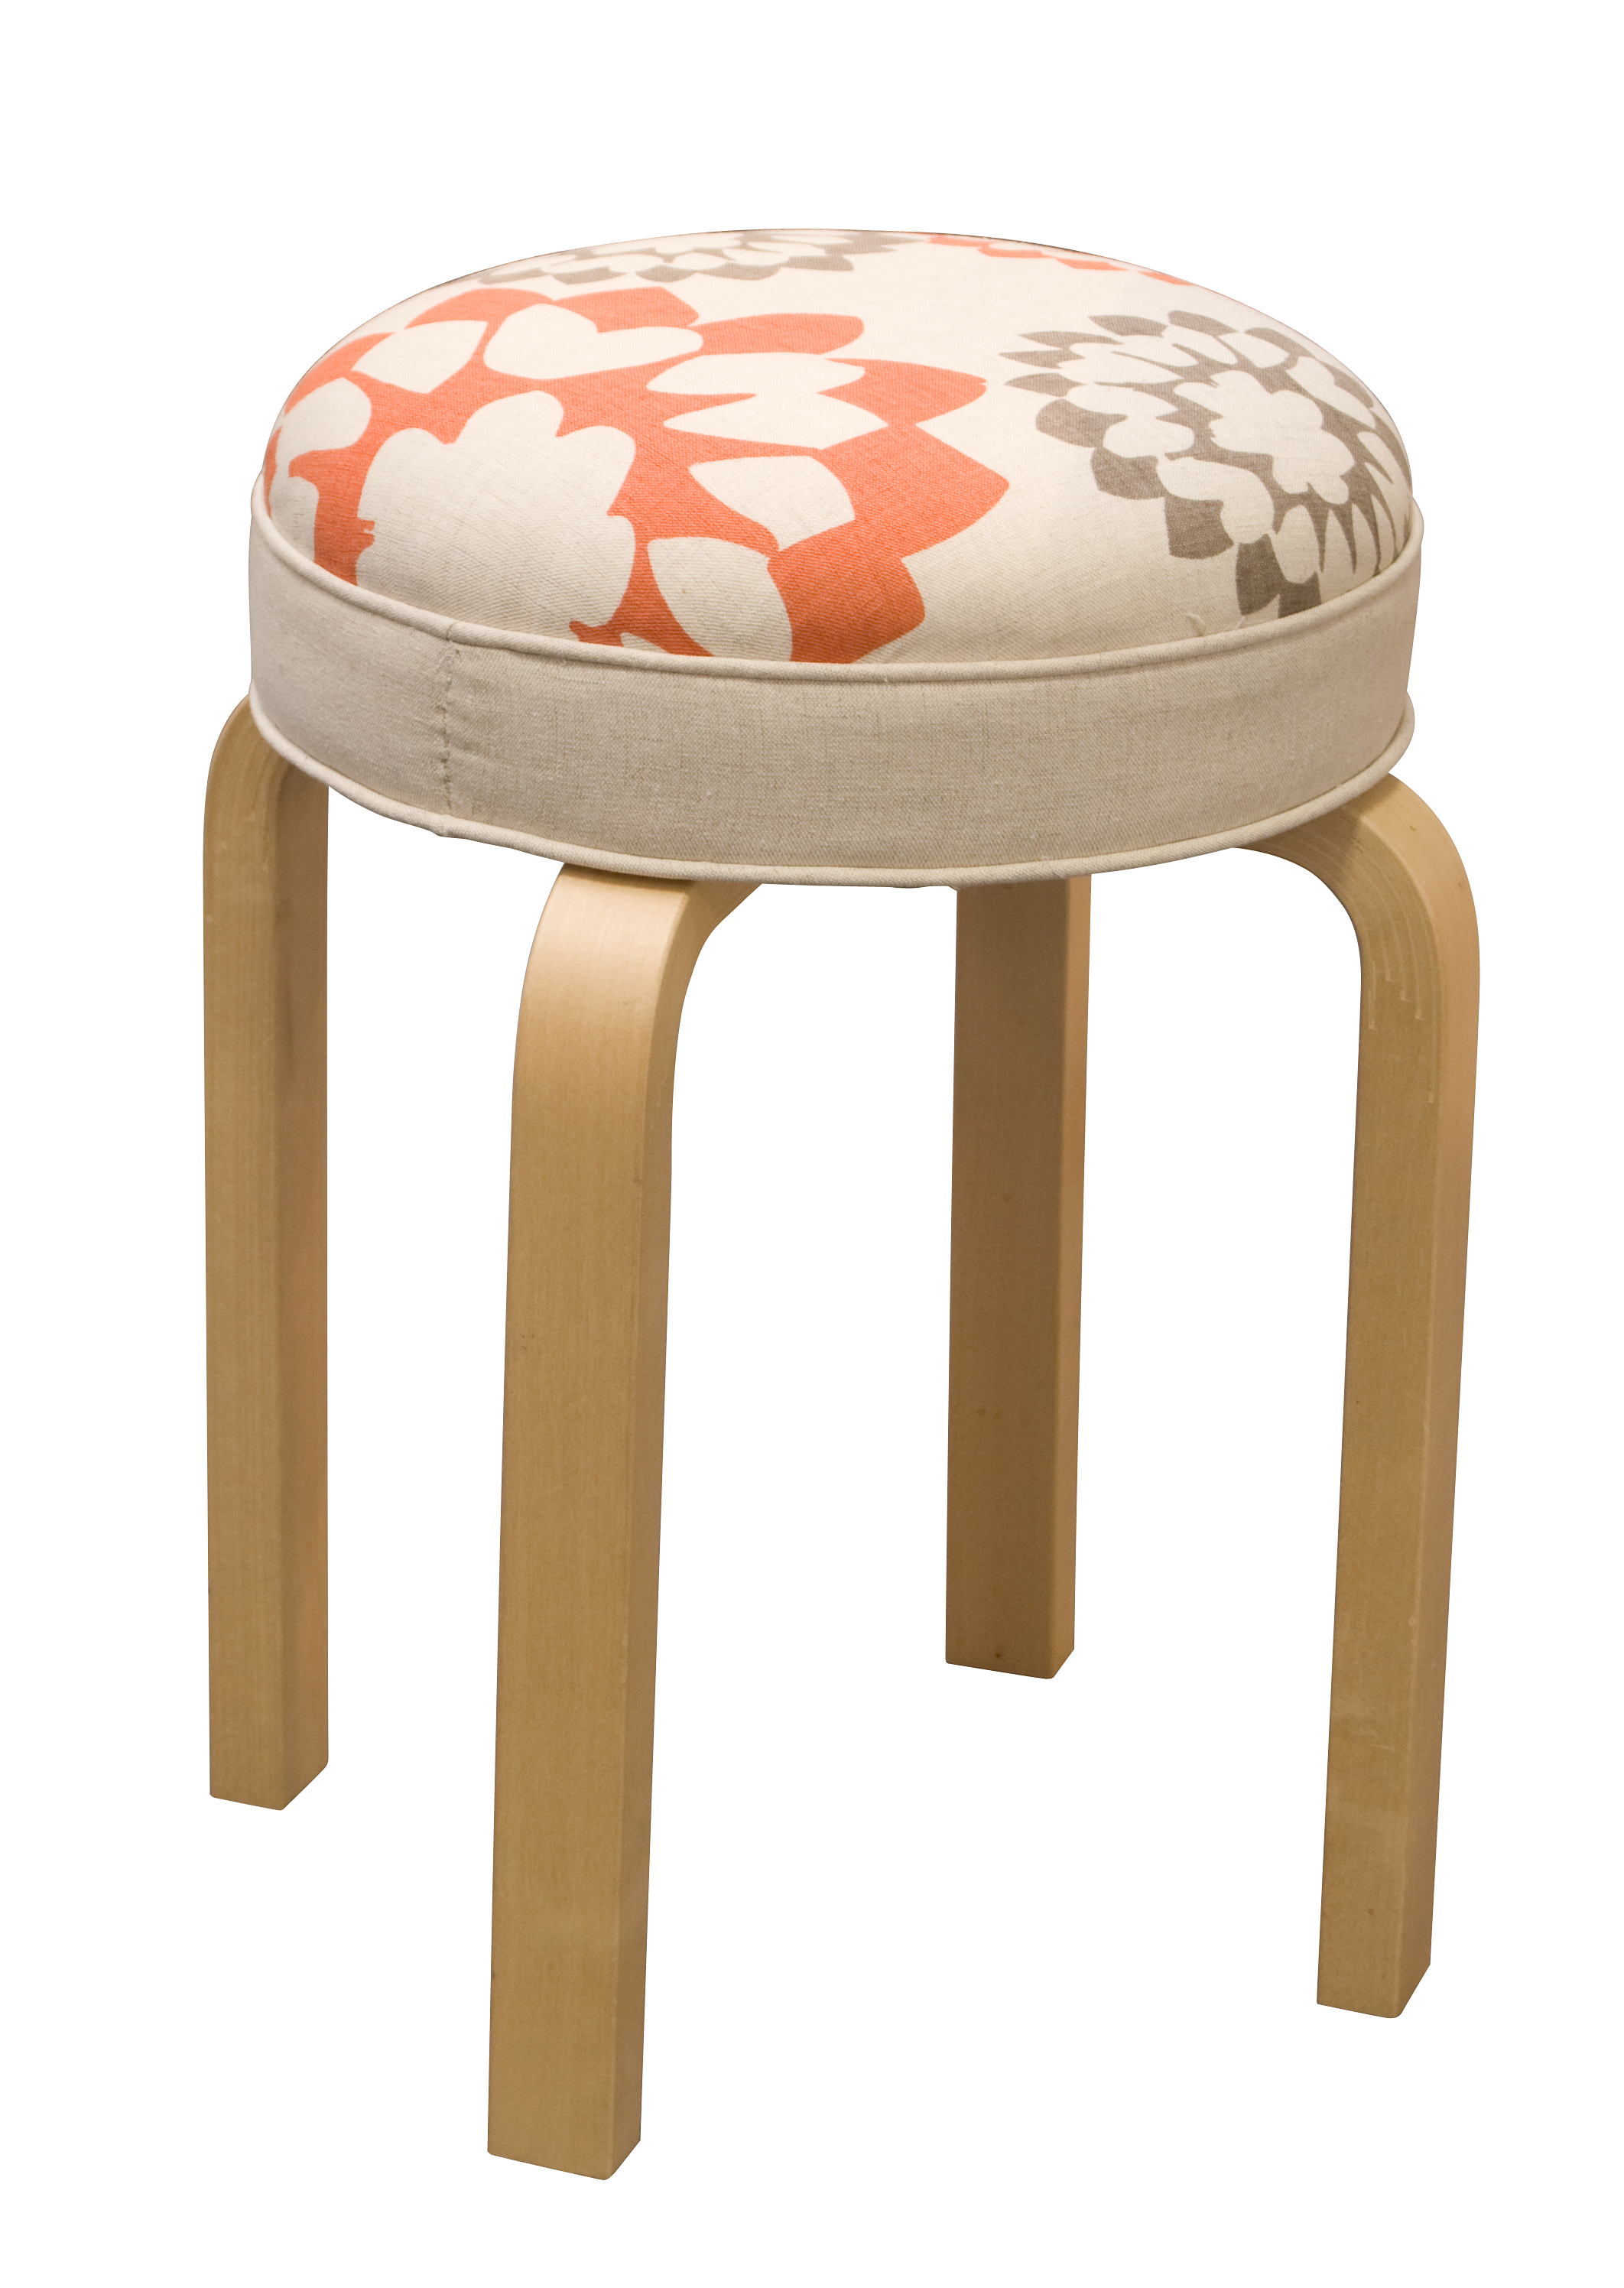 furniture stool carousel linen judy ross textiles. Black Bedroom Furniture Sets. Home Design Ideas